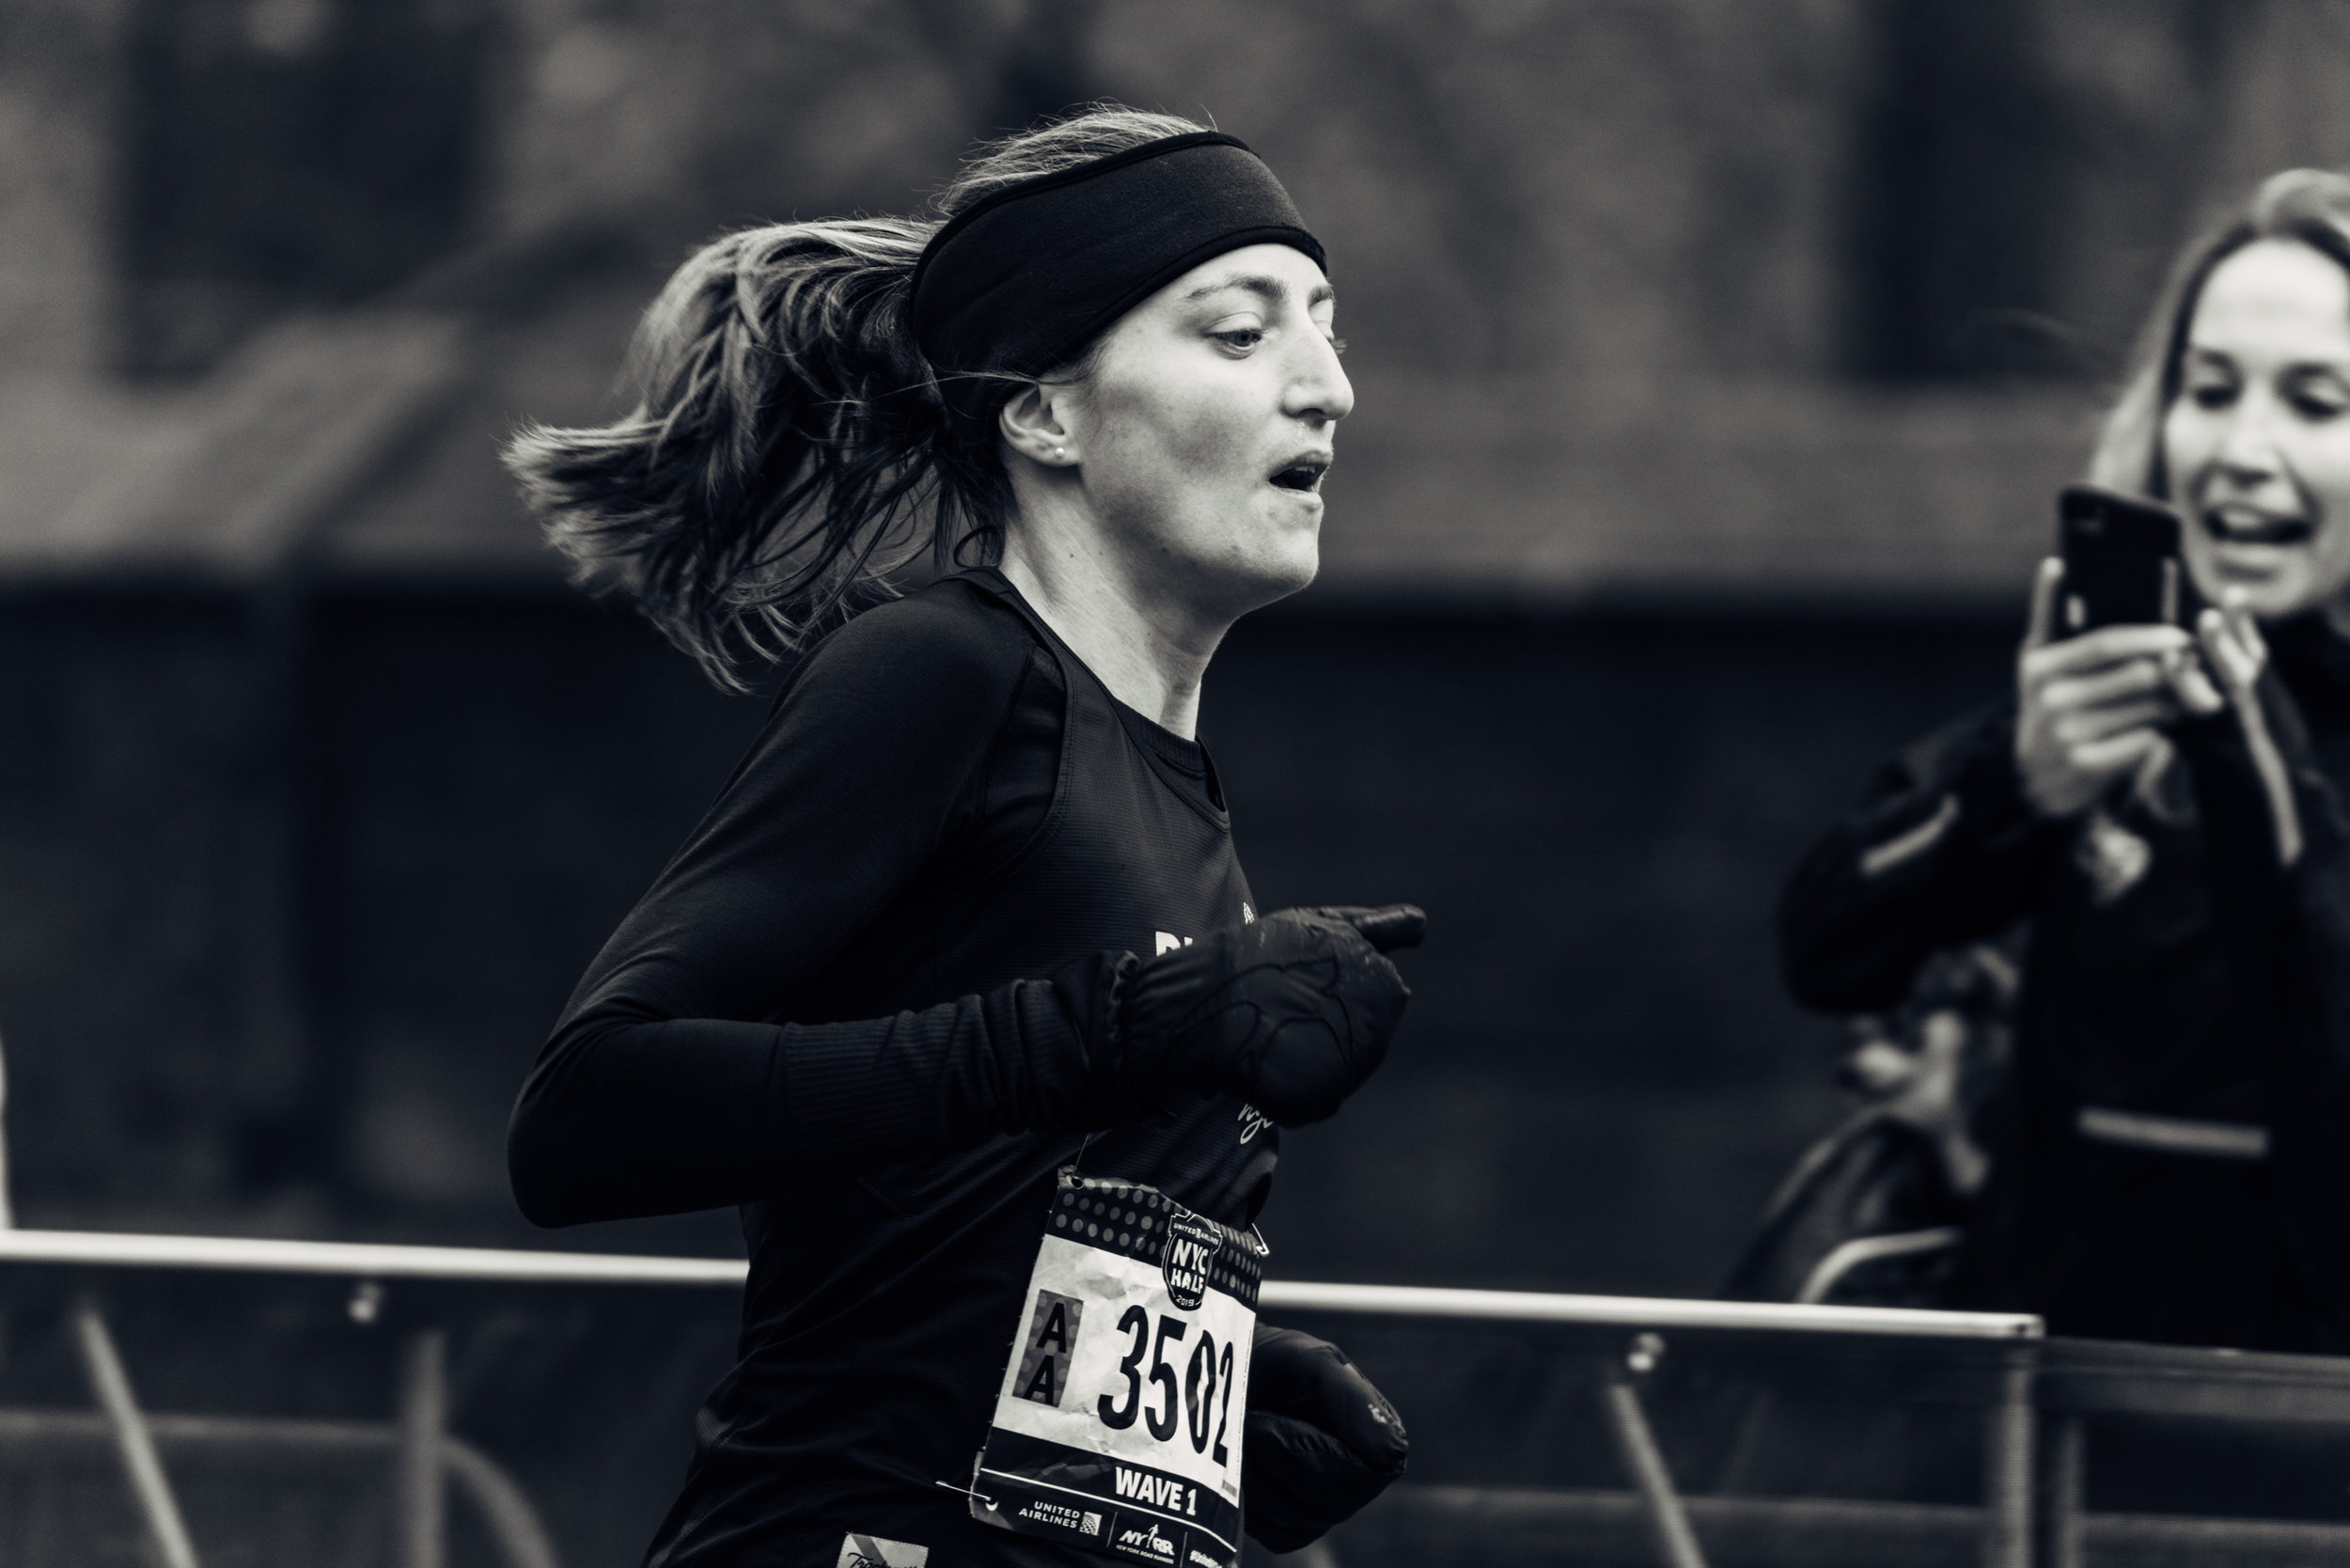 Photo Rhetoric - To Be Determined - United NYC Half Marathon-3025.jpg